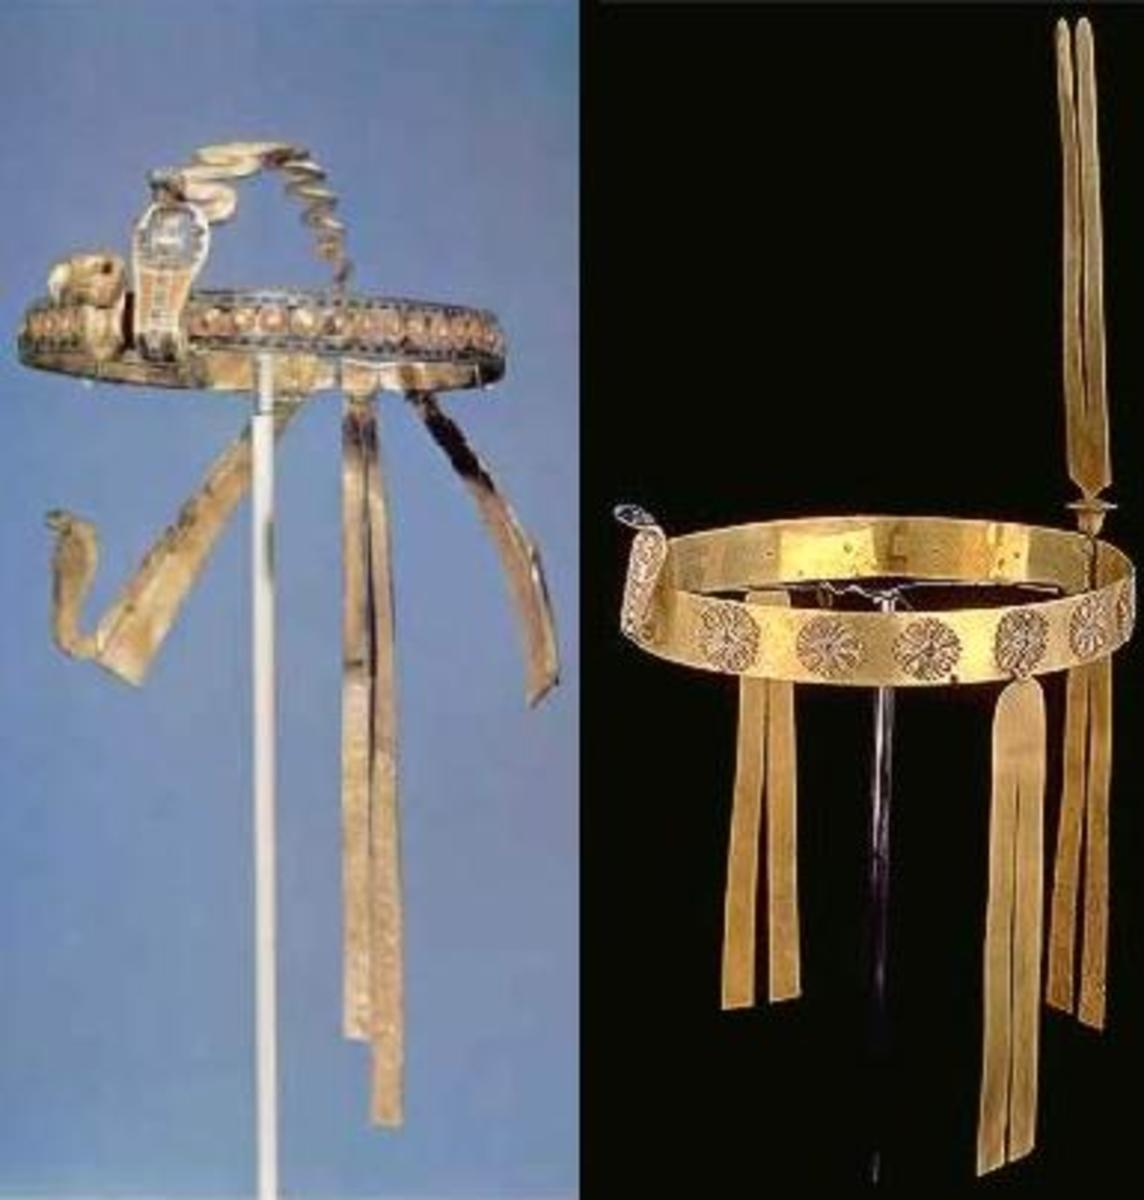 Both these Diadems belonged to Tutankhamun. Left: at the front of this diadem are the vulture and the uraeus; right: wavy body extending in an arc from front to back, serving to keep the diadem from dropping down over the face